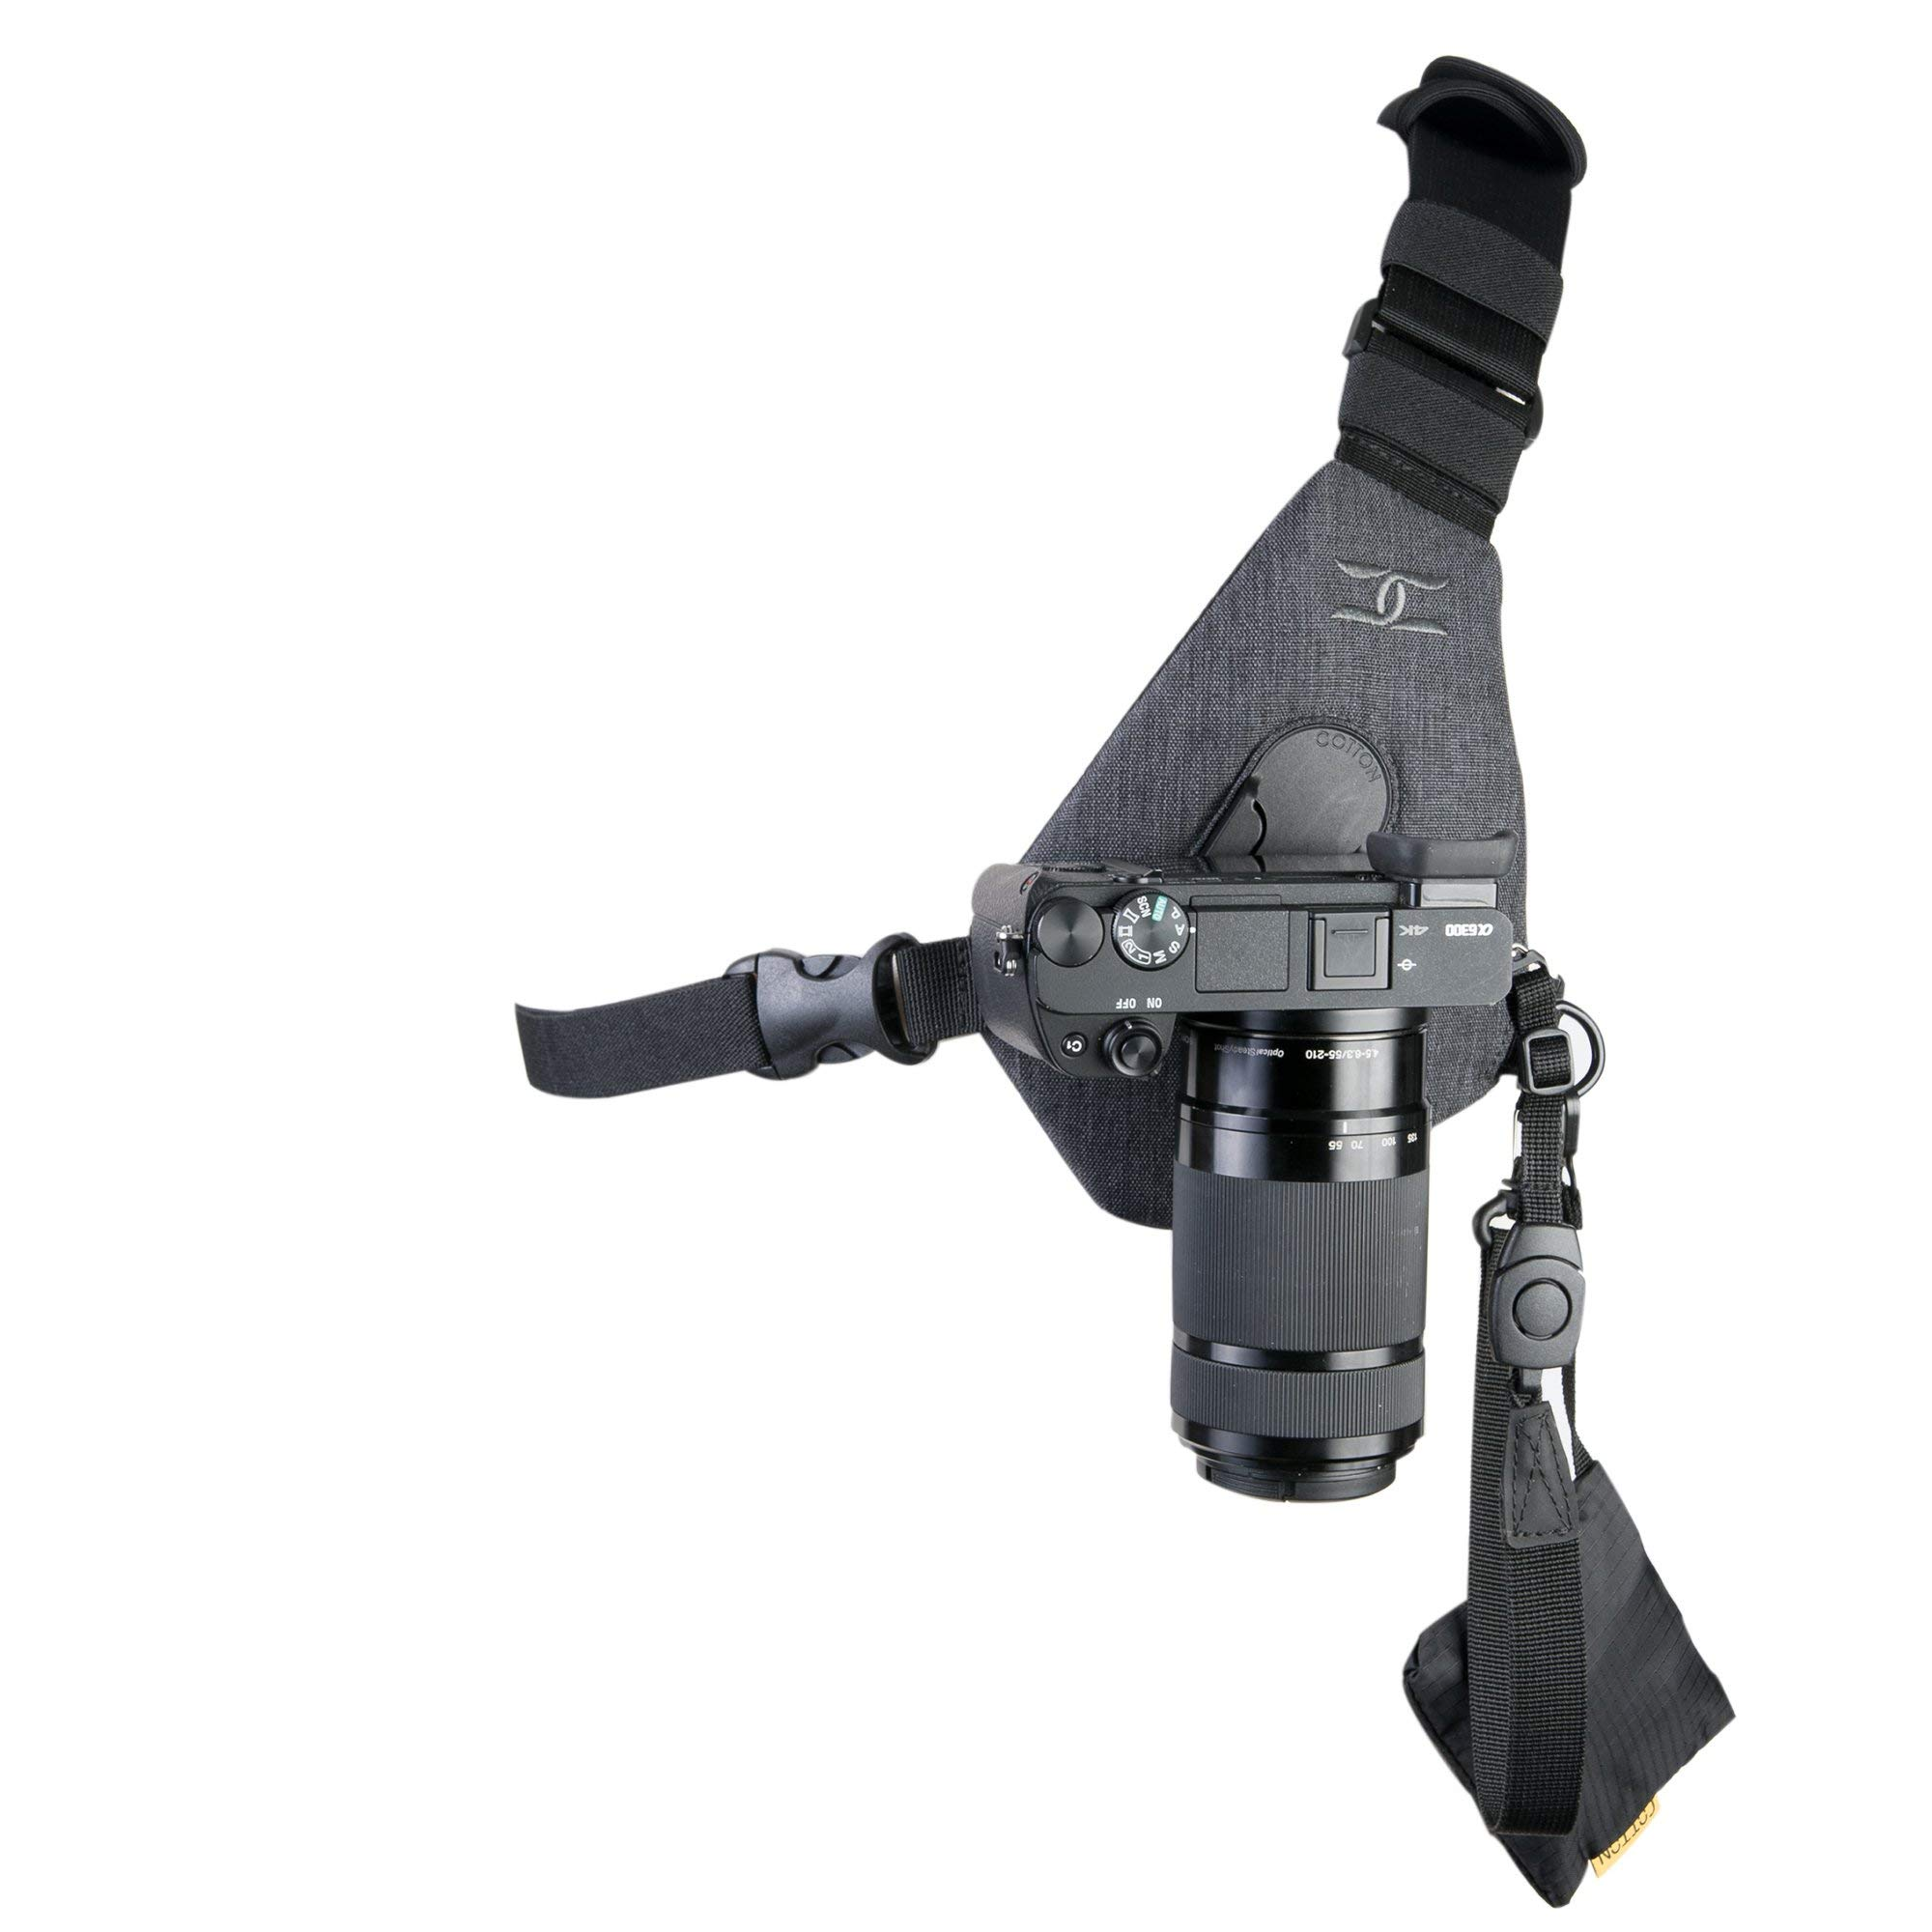 Cotton Carrier Skout Sling Style Harness for One Camera - Grey by Cotton Carrier